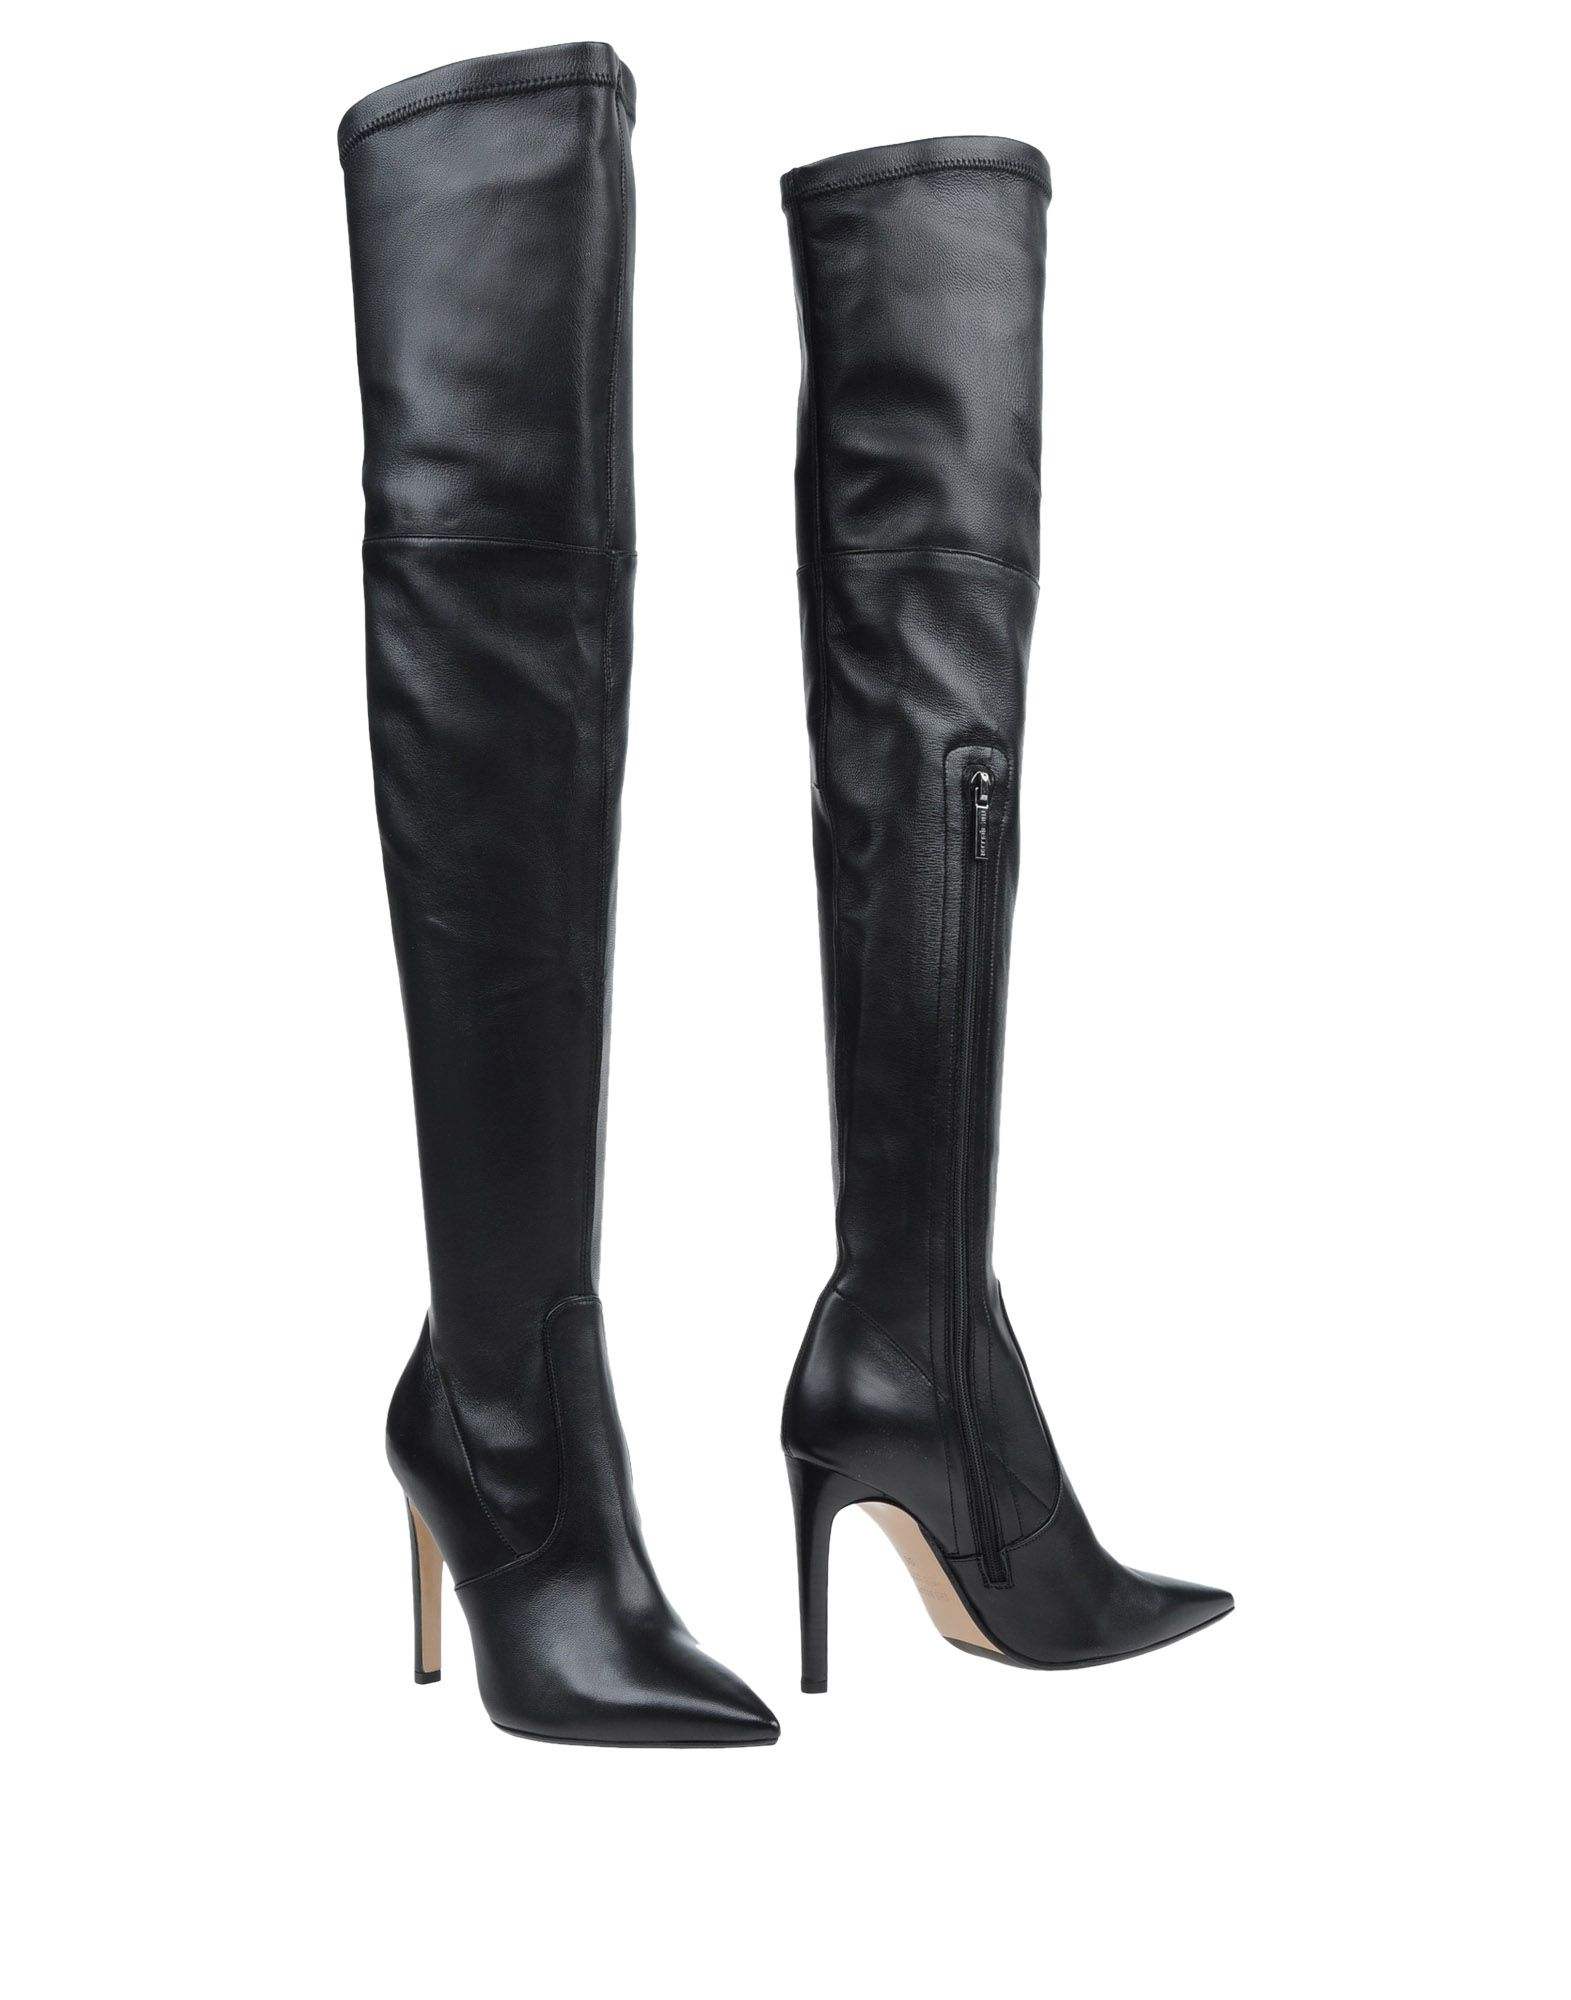 ce314fee50f Lyst - The Seller Boots in Black